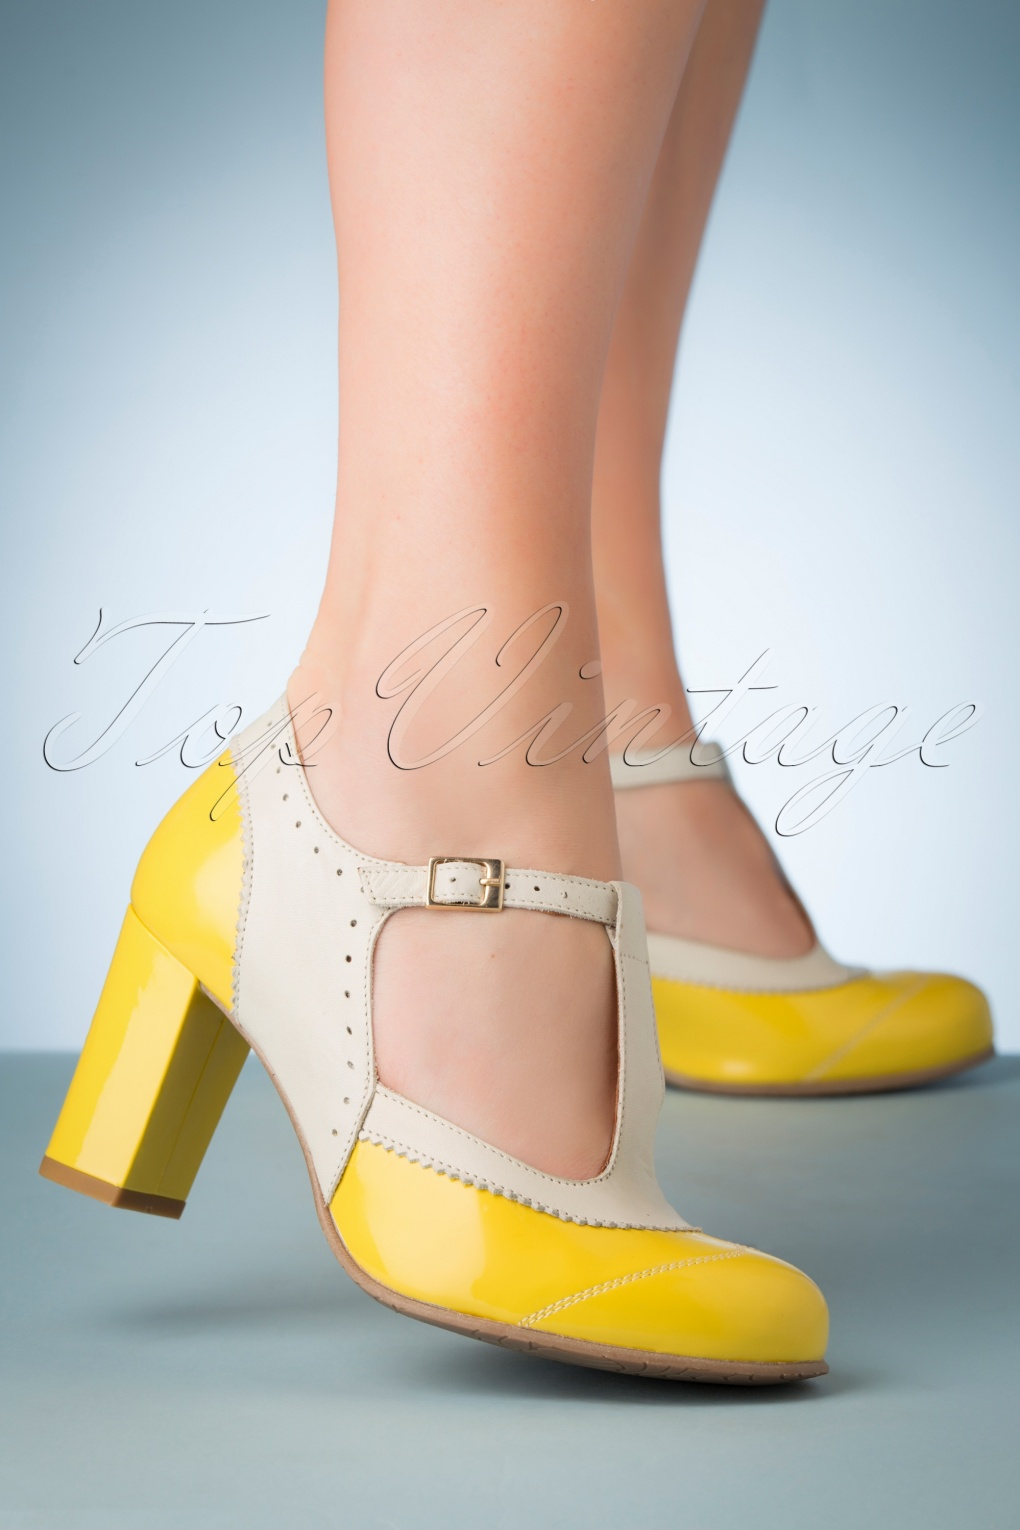 1960s Style Dresses, Clothing, Shoes UK 60s Ada Pumo Leather T-Strap Pumps in Yellow �129.47 AT vintagedancer.com